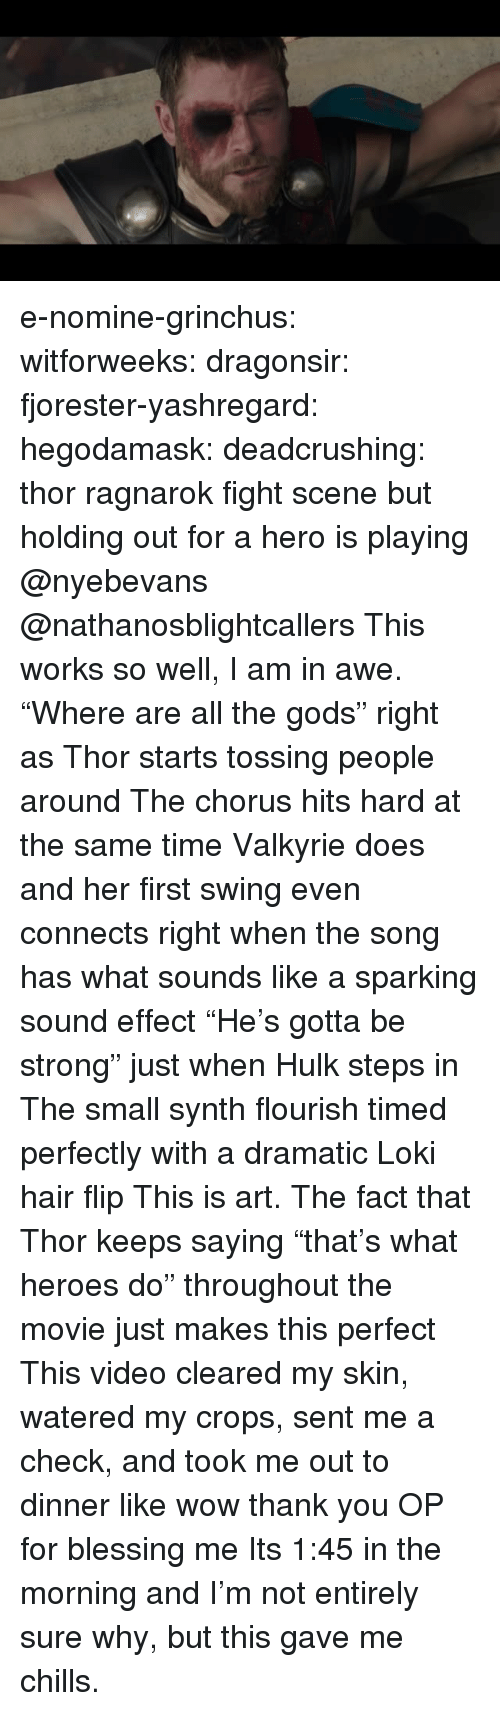 """Watered: e-nomine-grinchus: witforweeks:  dragonsir:  fjorester-yashregard:  hegodamask:  deadcrushing: thor ragnarok fight scene but holding out for a hero is playing @nyebevans @nathanosblightcallers  This works so well, I am in awe. """"Where are all the gods"""" right as Thor starts tossing people around The chorus hits hard at the same time Valkyrie does and her first swing even connects right when the song has what sounds like a sparking sound effect """"He's gotta be strong"""" just when Hulk steps in The small synth flourish timed perfectly with a dramatic Loki hair flip This is art.   The fact that Thor keeps saying """"that's what heroes do"""" throughout the movie just makes this perfect   This video cleared my skin, watered my crops, sent me a check, and took me out to dinner like wow thank you OP for blessing me   Its 1:45 in the morning and I'm not entirely sure why, but this gave me chills."""